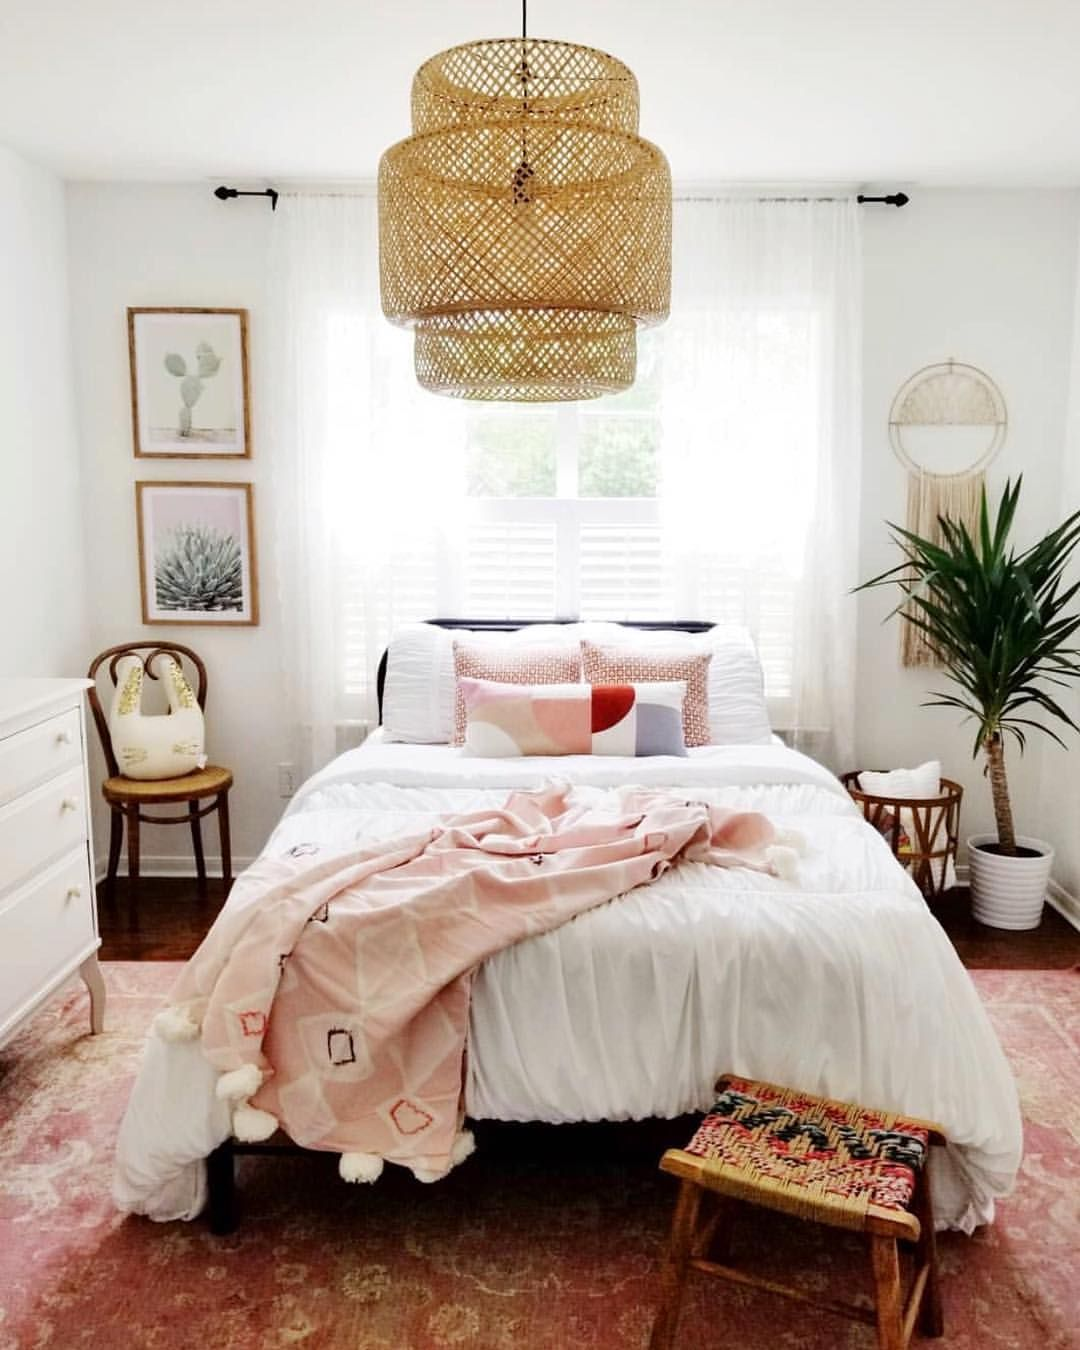 Boho Bedroom: Saving This Dreamy Boho Bedroom To Our Mood Board ASAP